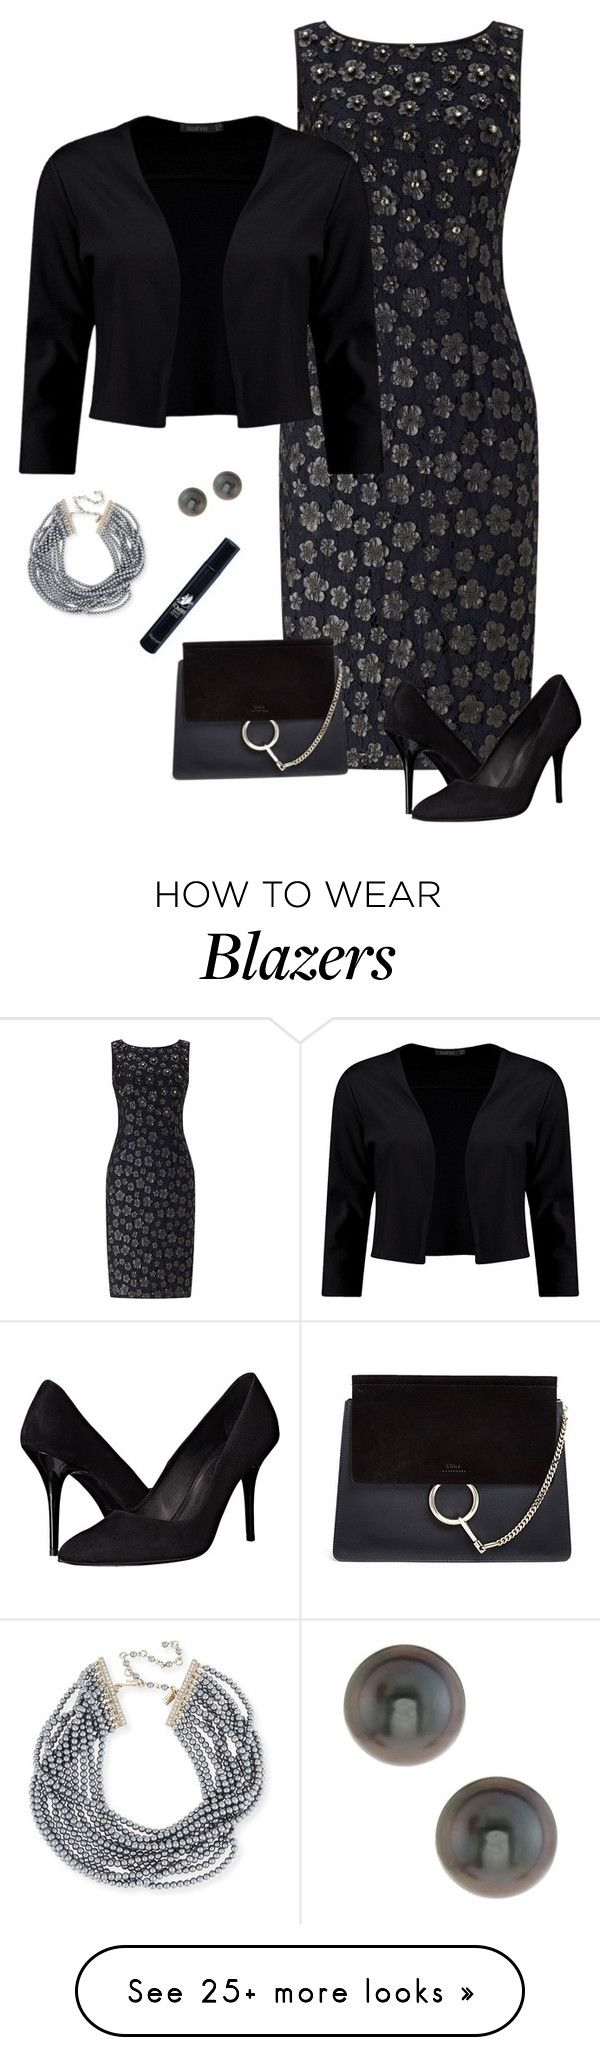 """Pro"" by picassogirl on Polyvore featuring Adrianna Papell, Boohoo, Chloé, The Kooples, Kenneth Jay Lane, Belpearl and Diptyque"